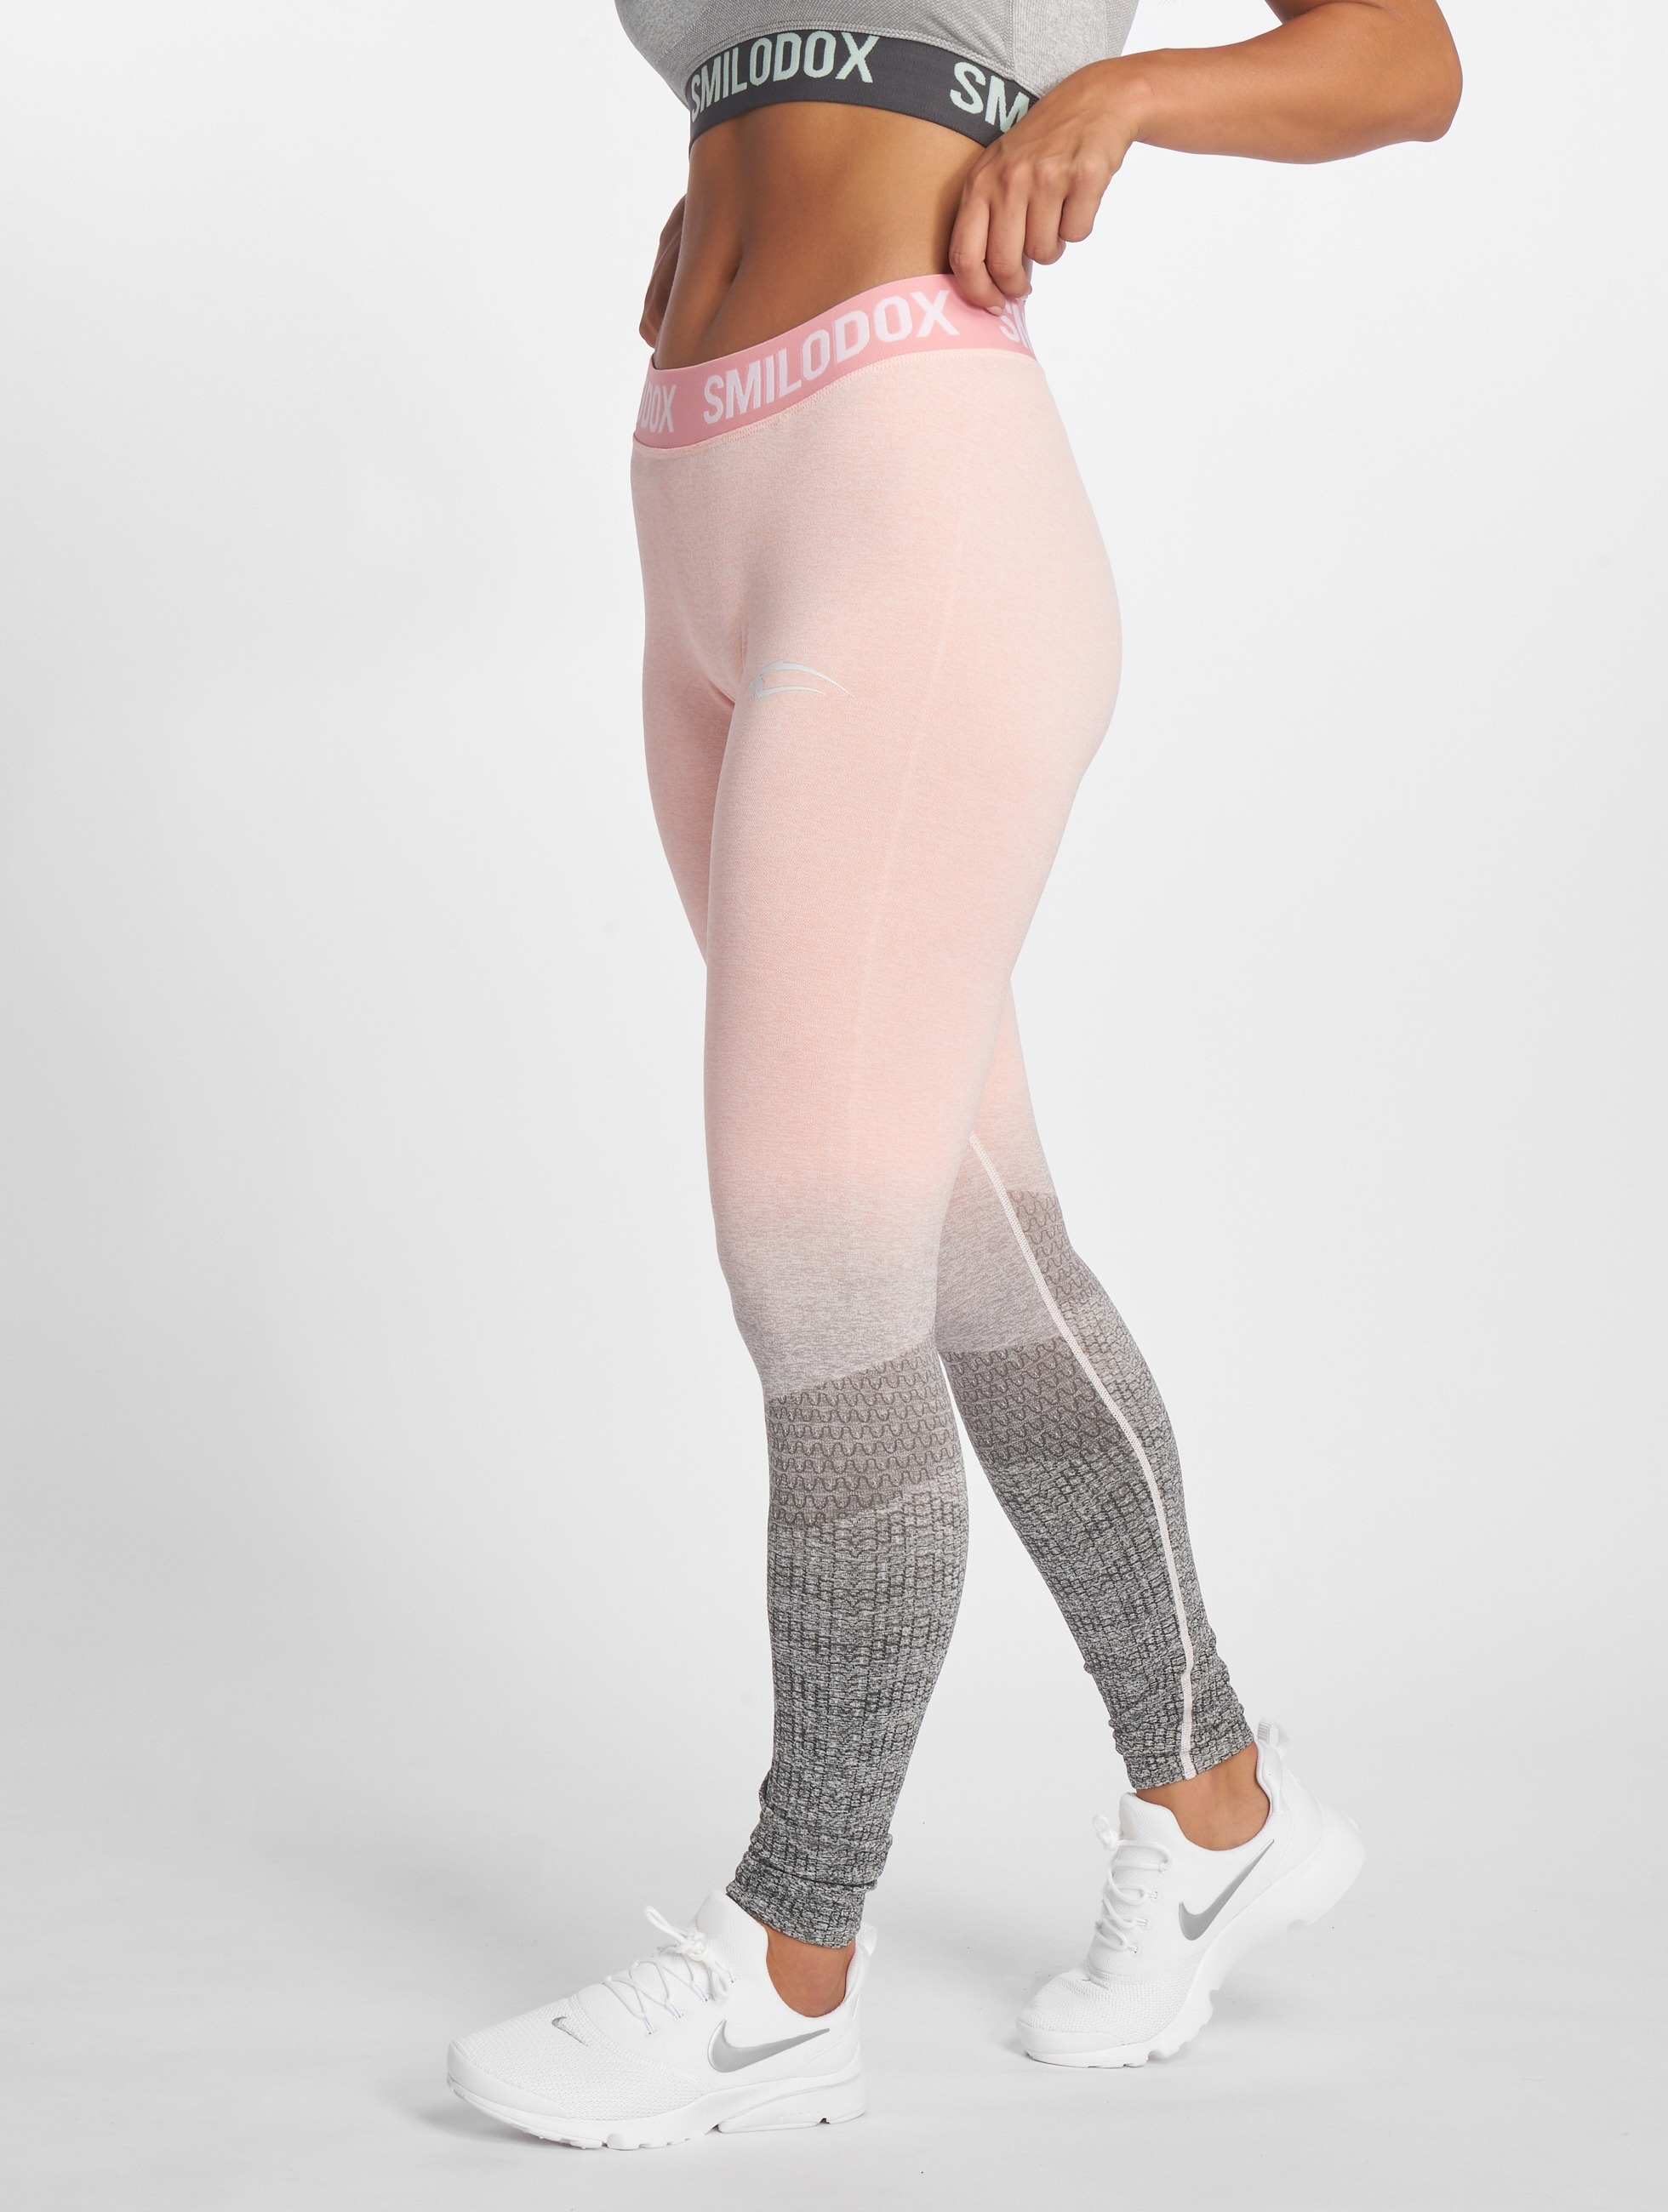 Smilodox | Seamless Recent rose Femme Leggings de sport